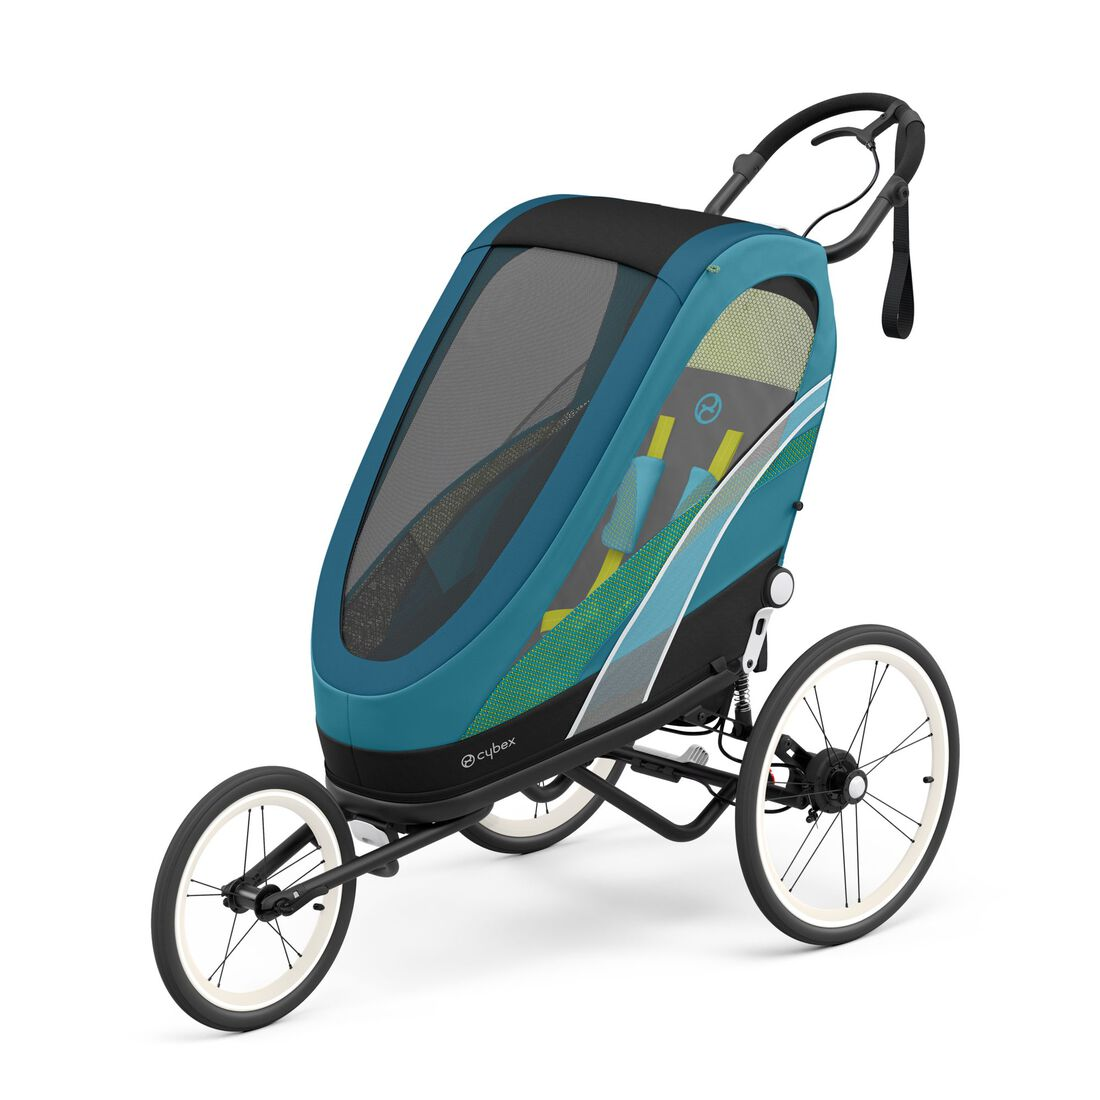 CYBEX Zeno Seat Pack - Maliblue in Maliblue large image number 2